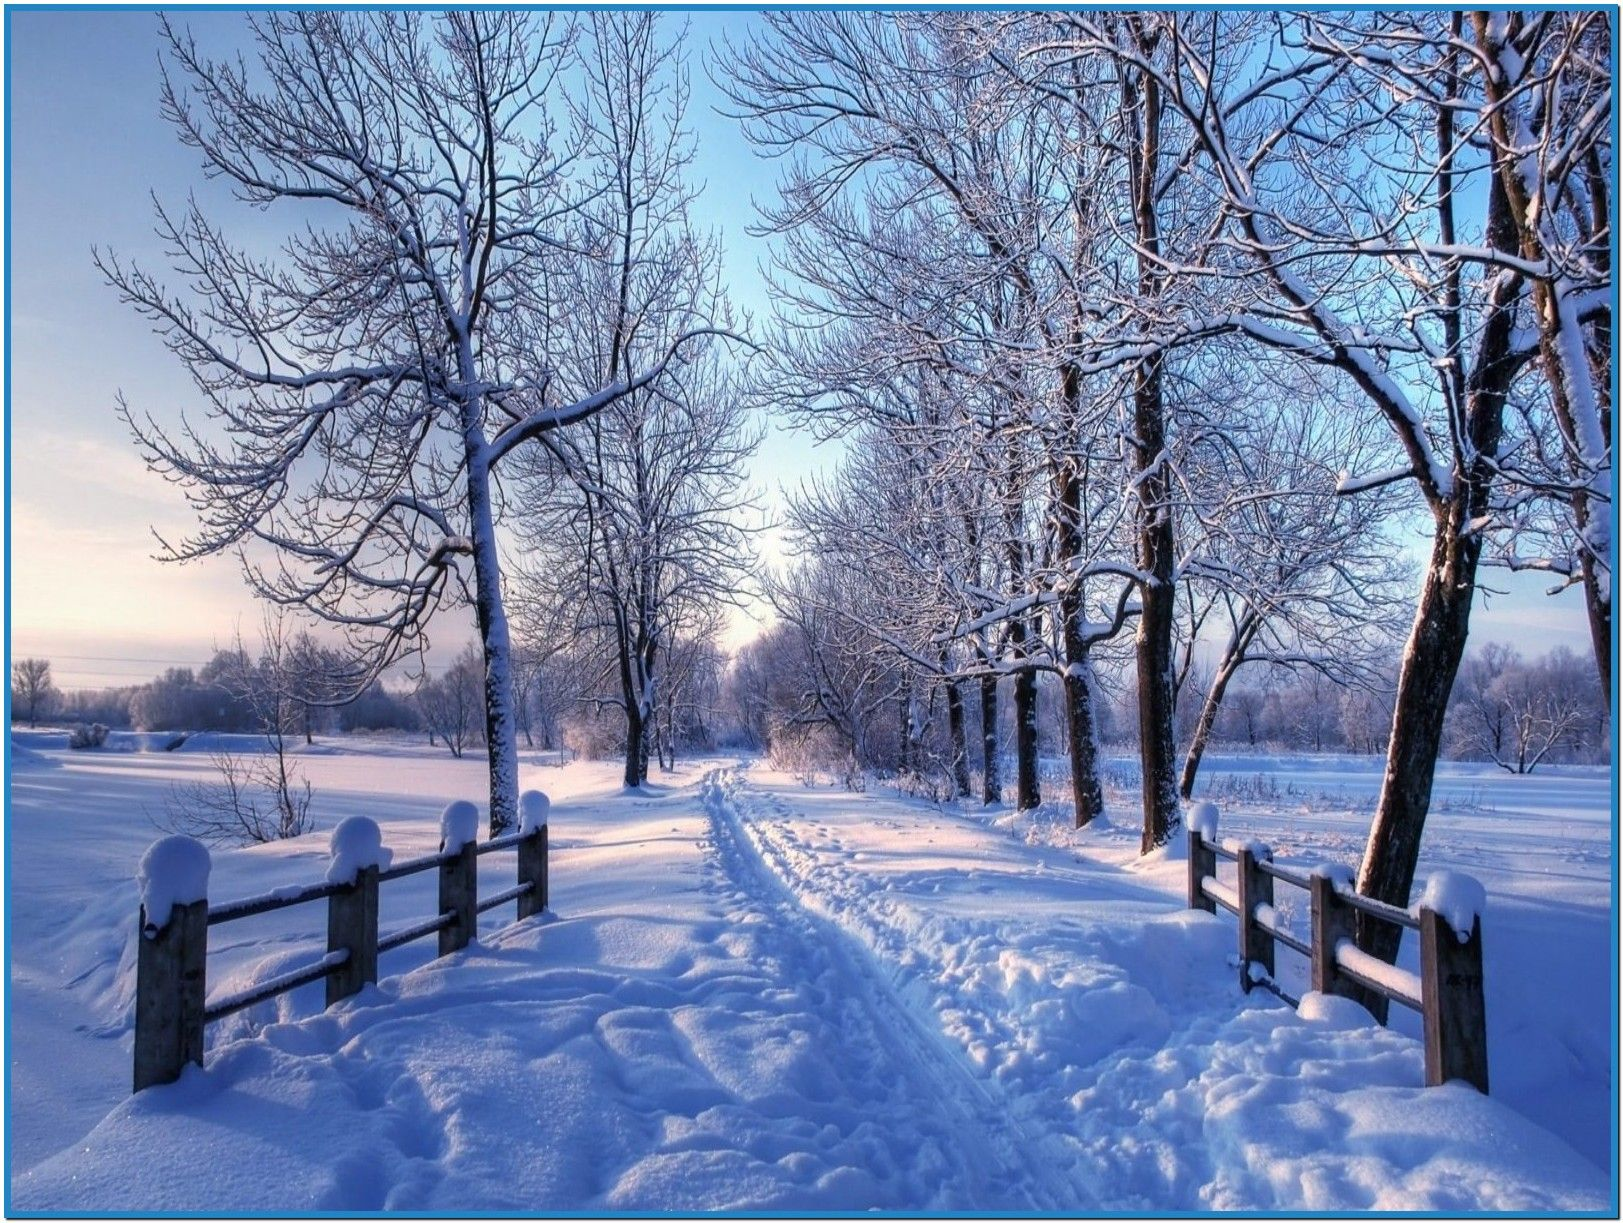 Winter Screensavers Snowy winter screensaver mac